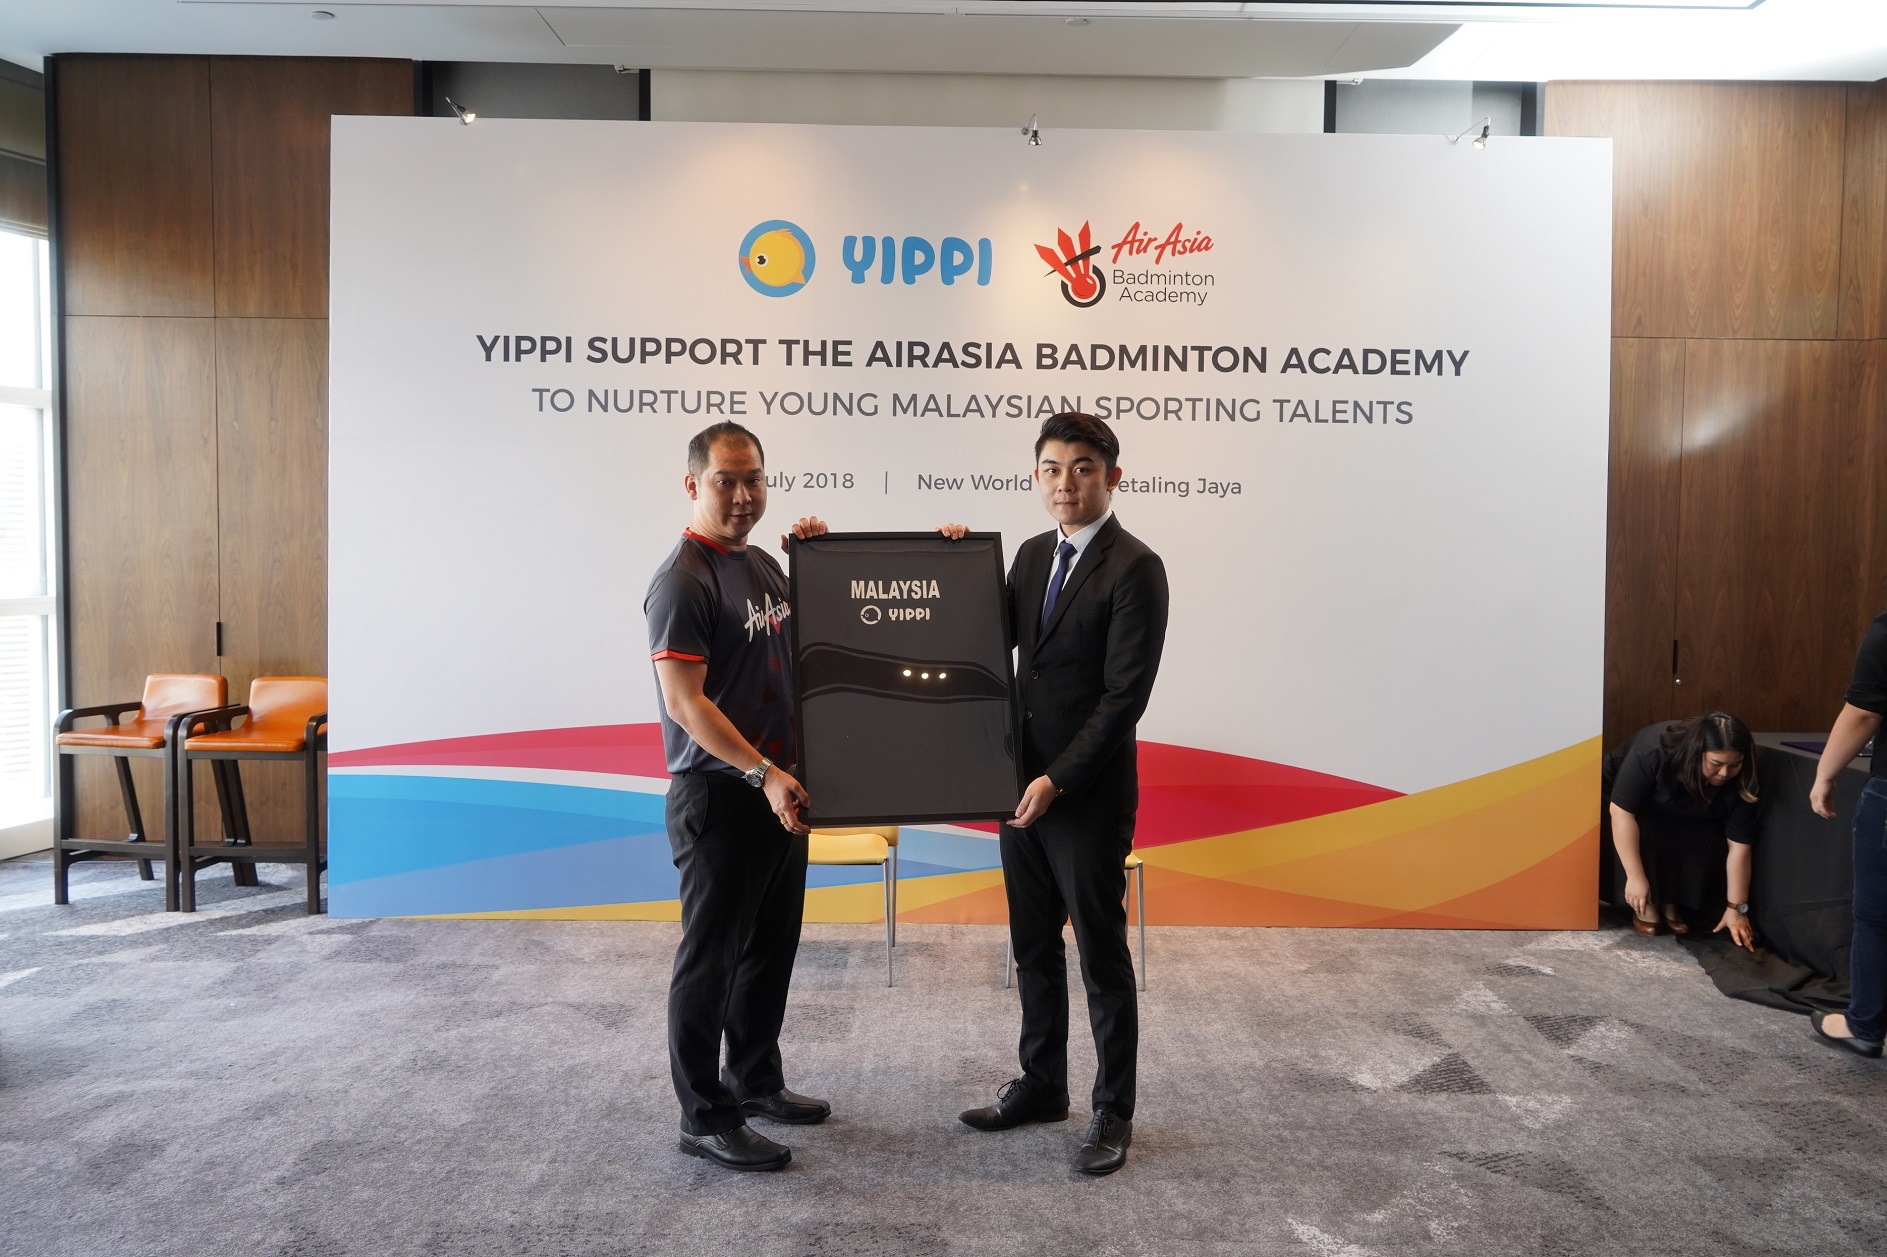 Image 2 – Jason Lim, President of AirAsia Badminton Academy and Tan Fai, Business Development Manager, Toga Limited during the signing ceremony new 2